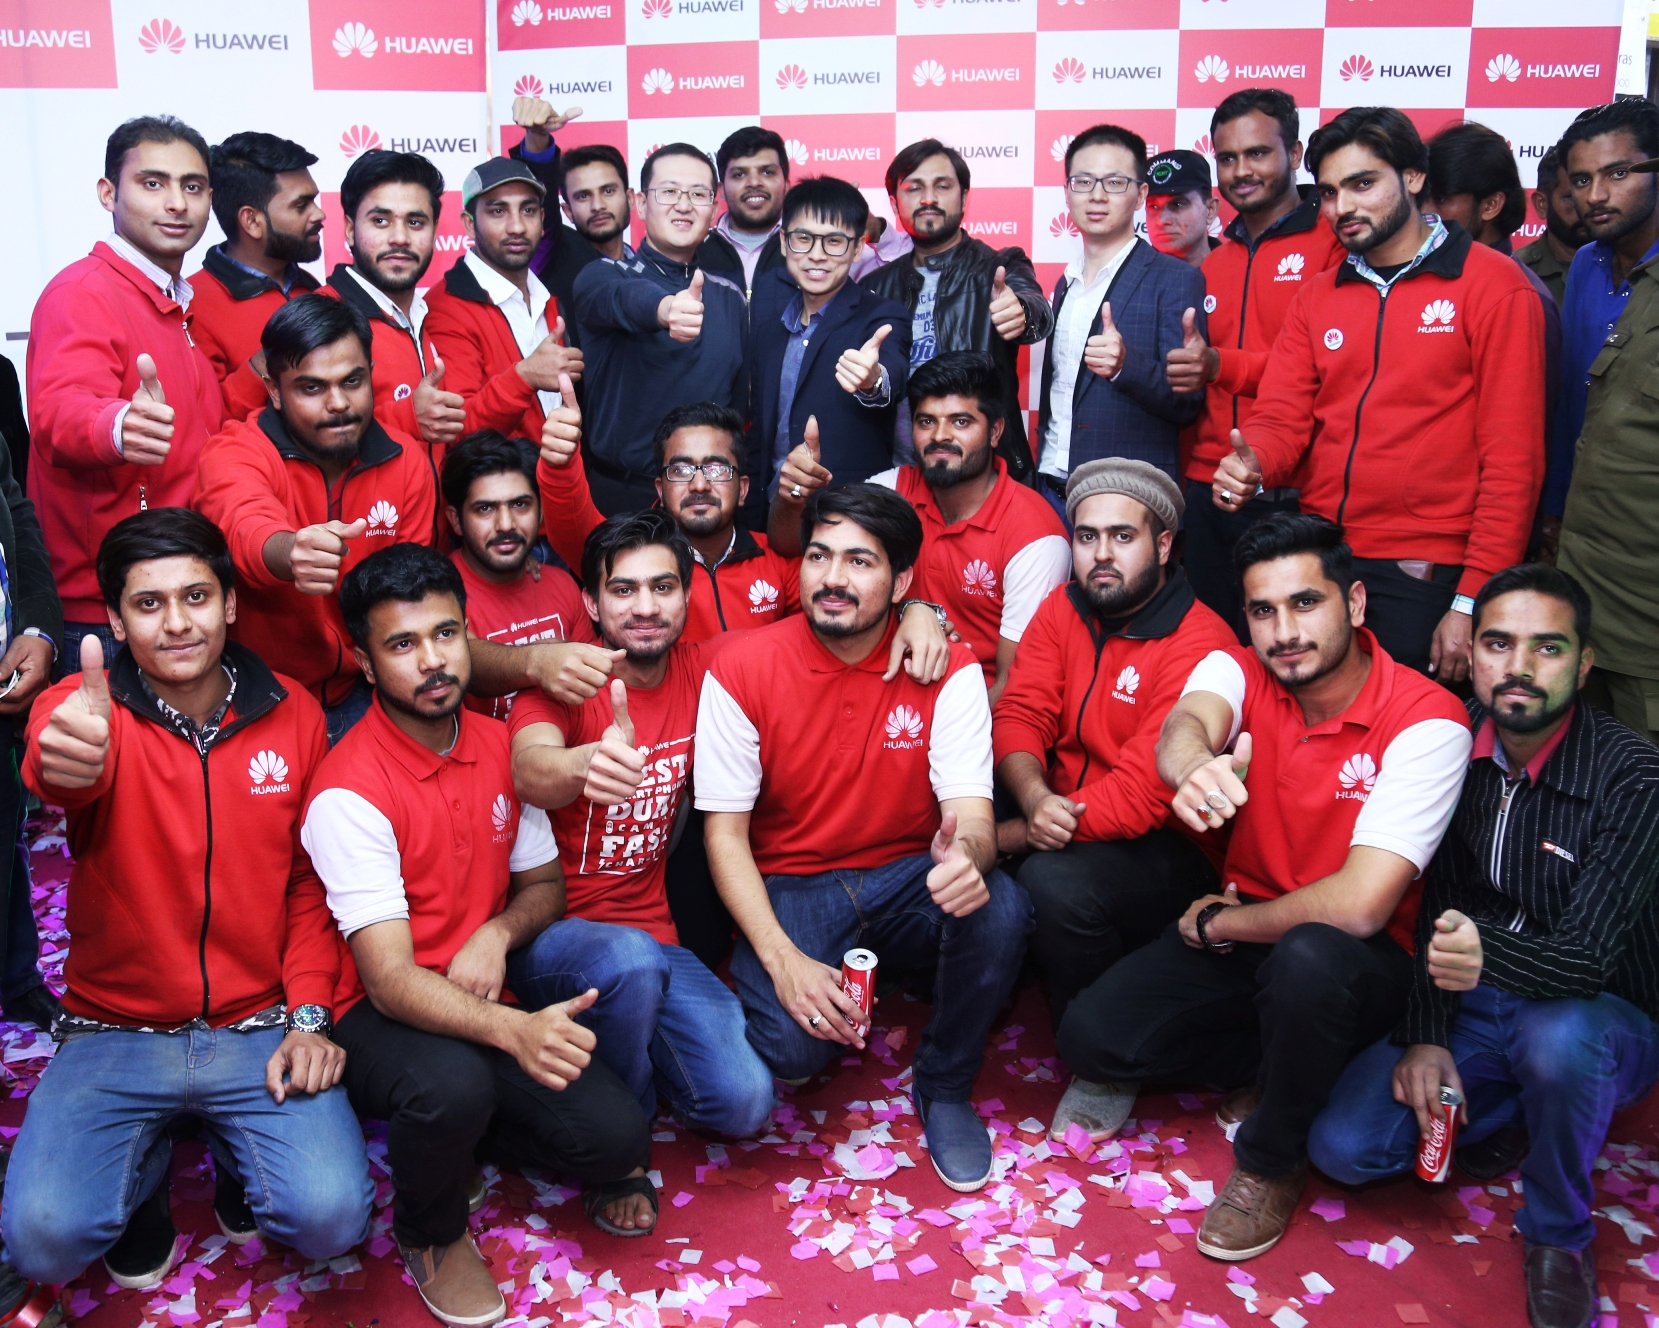 HUAWEI Shows its Love for the People of Sargodha